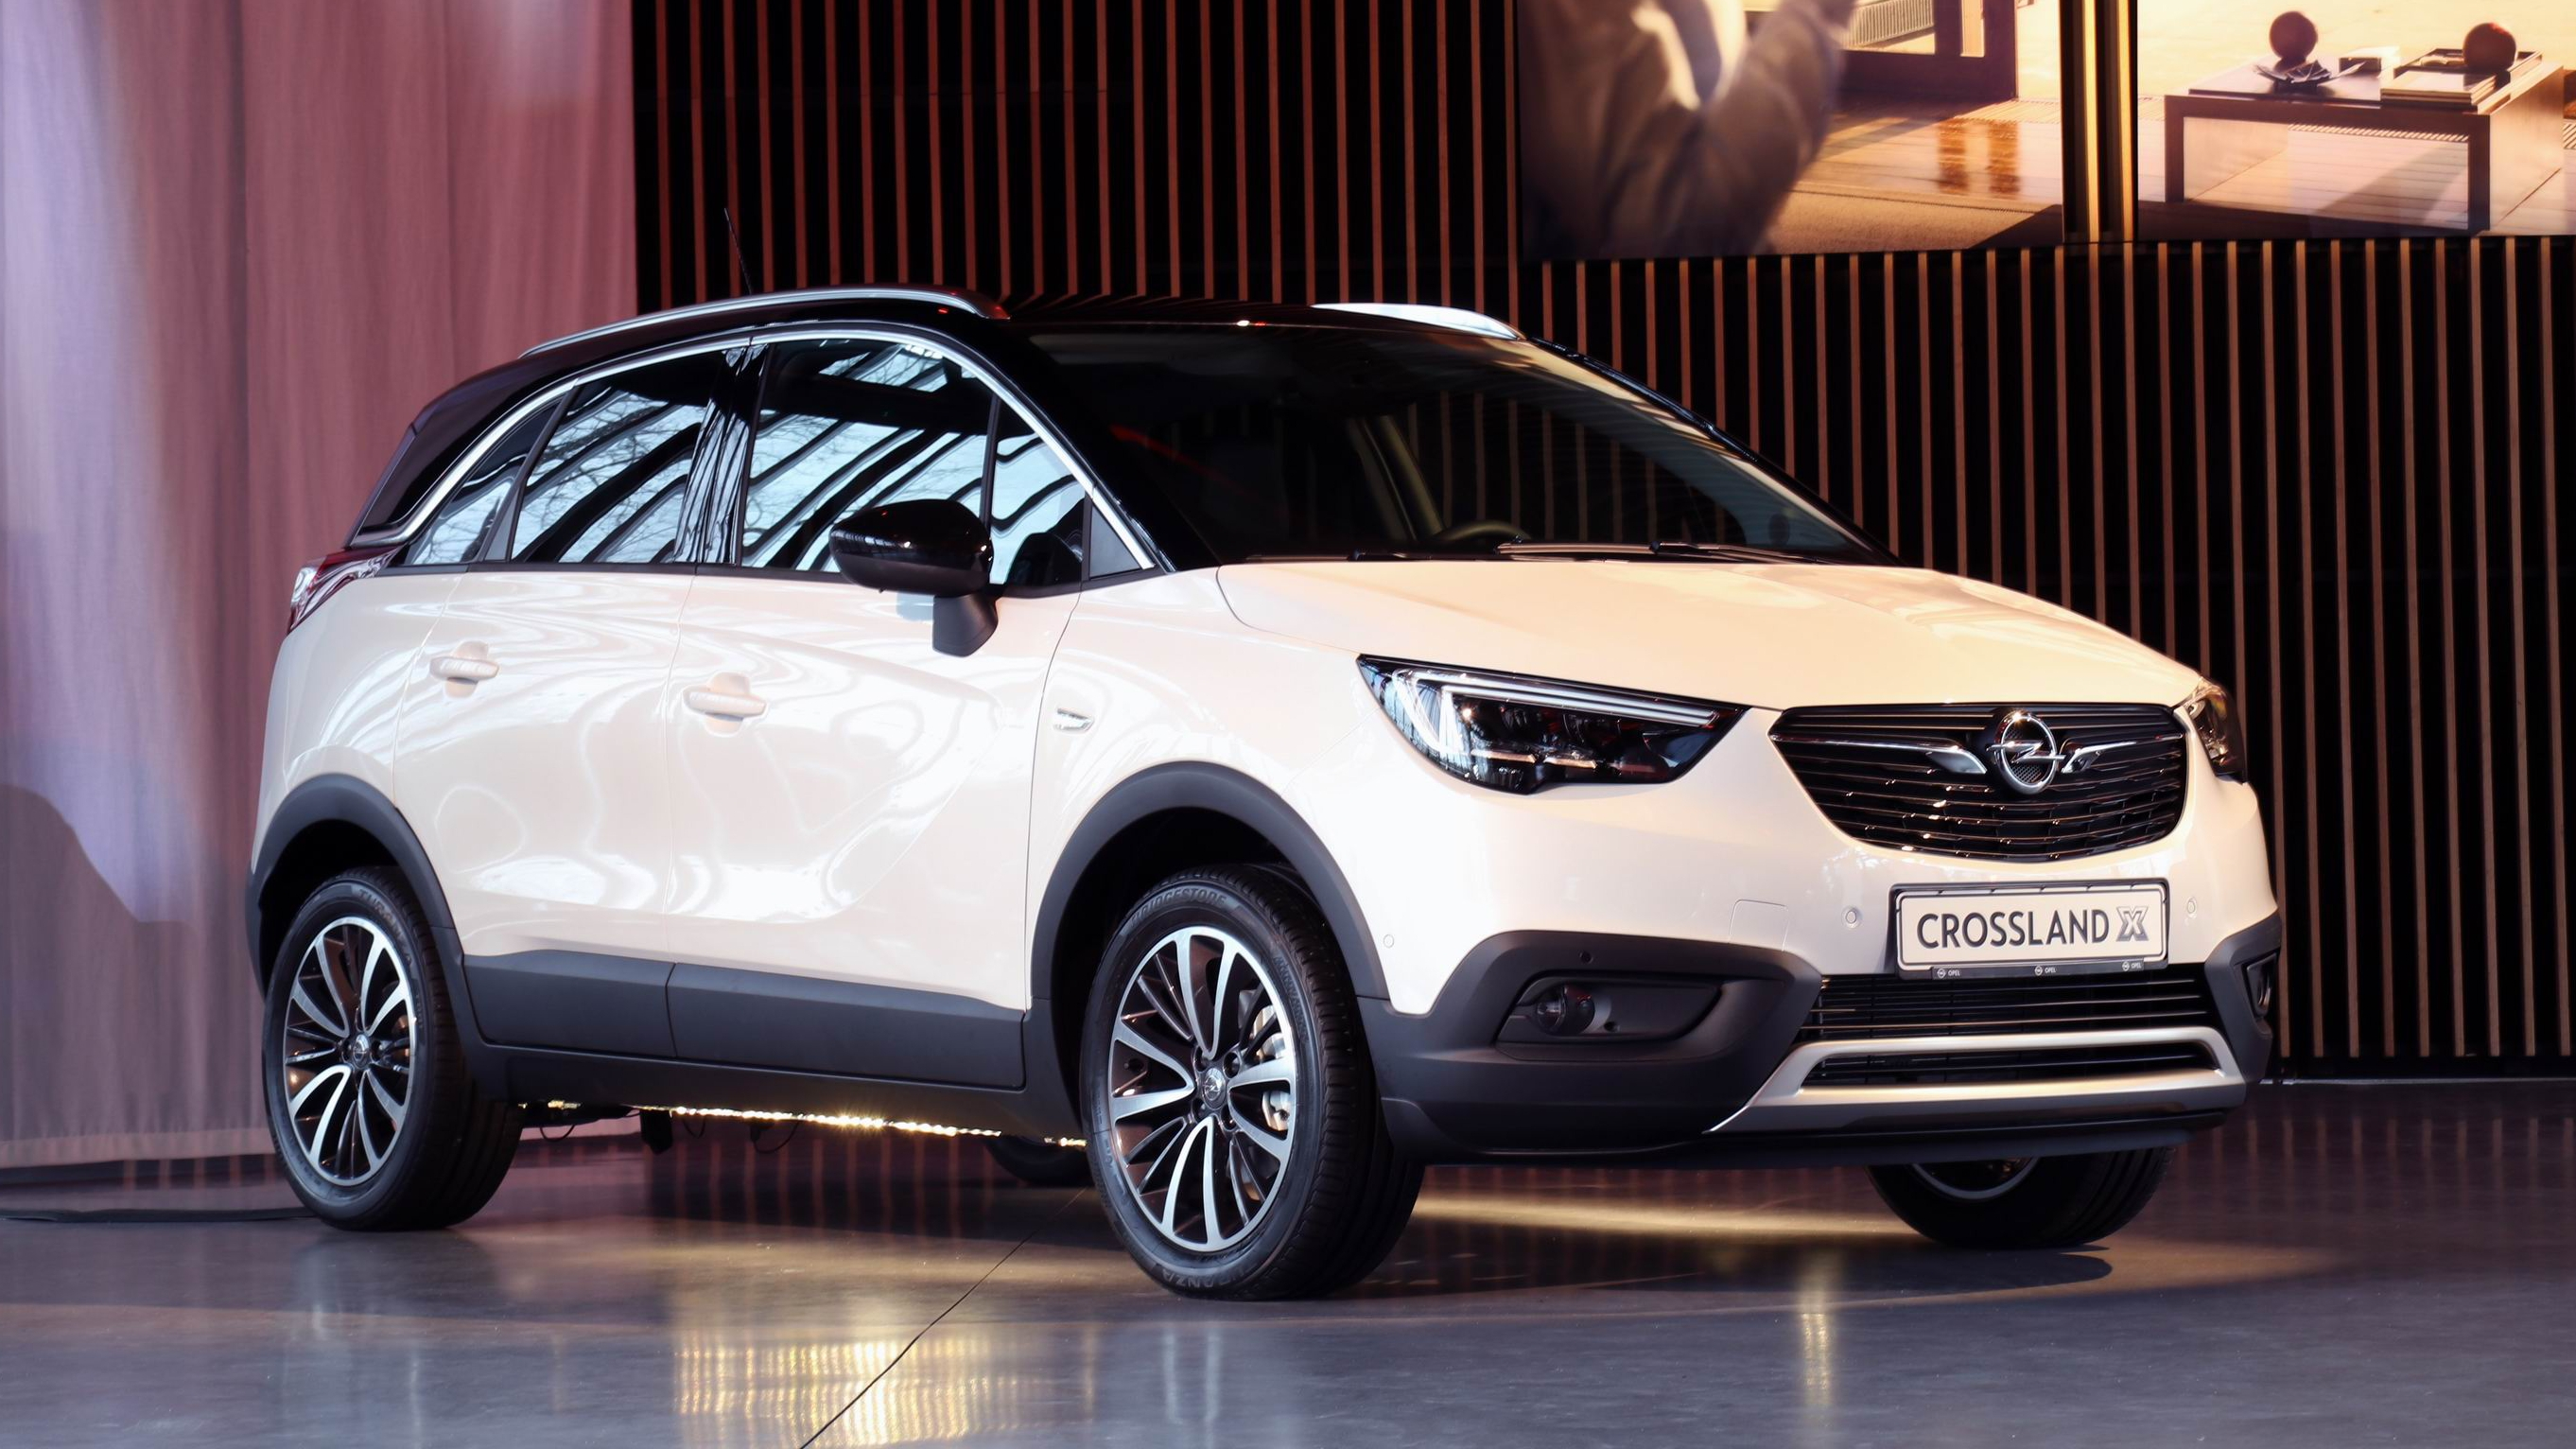 salon de gen ve 2017 opel crossland x le changement c 39 est maintenant vid o. Black Bedroom Furniture Sets. Home Design Ideas